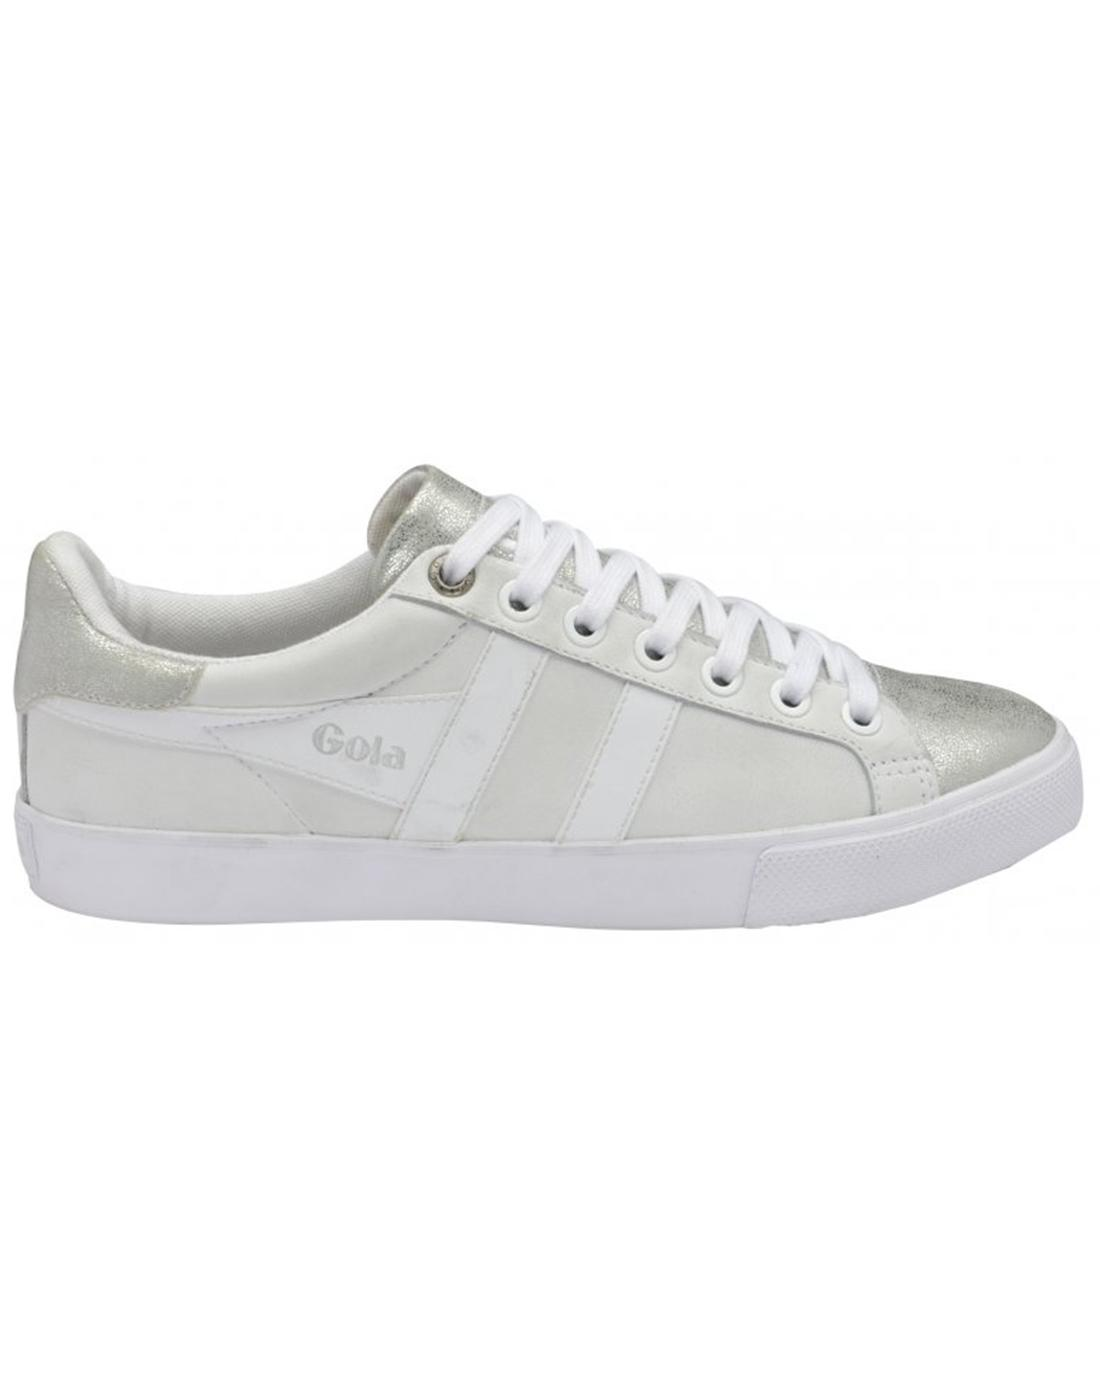 Orchid Metallic GOLA Womens Retro Trainers Silver